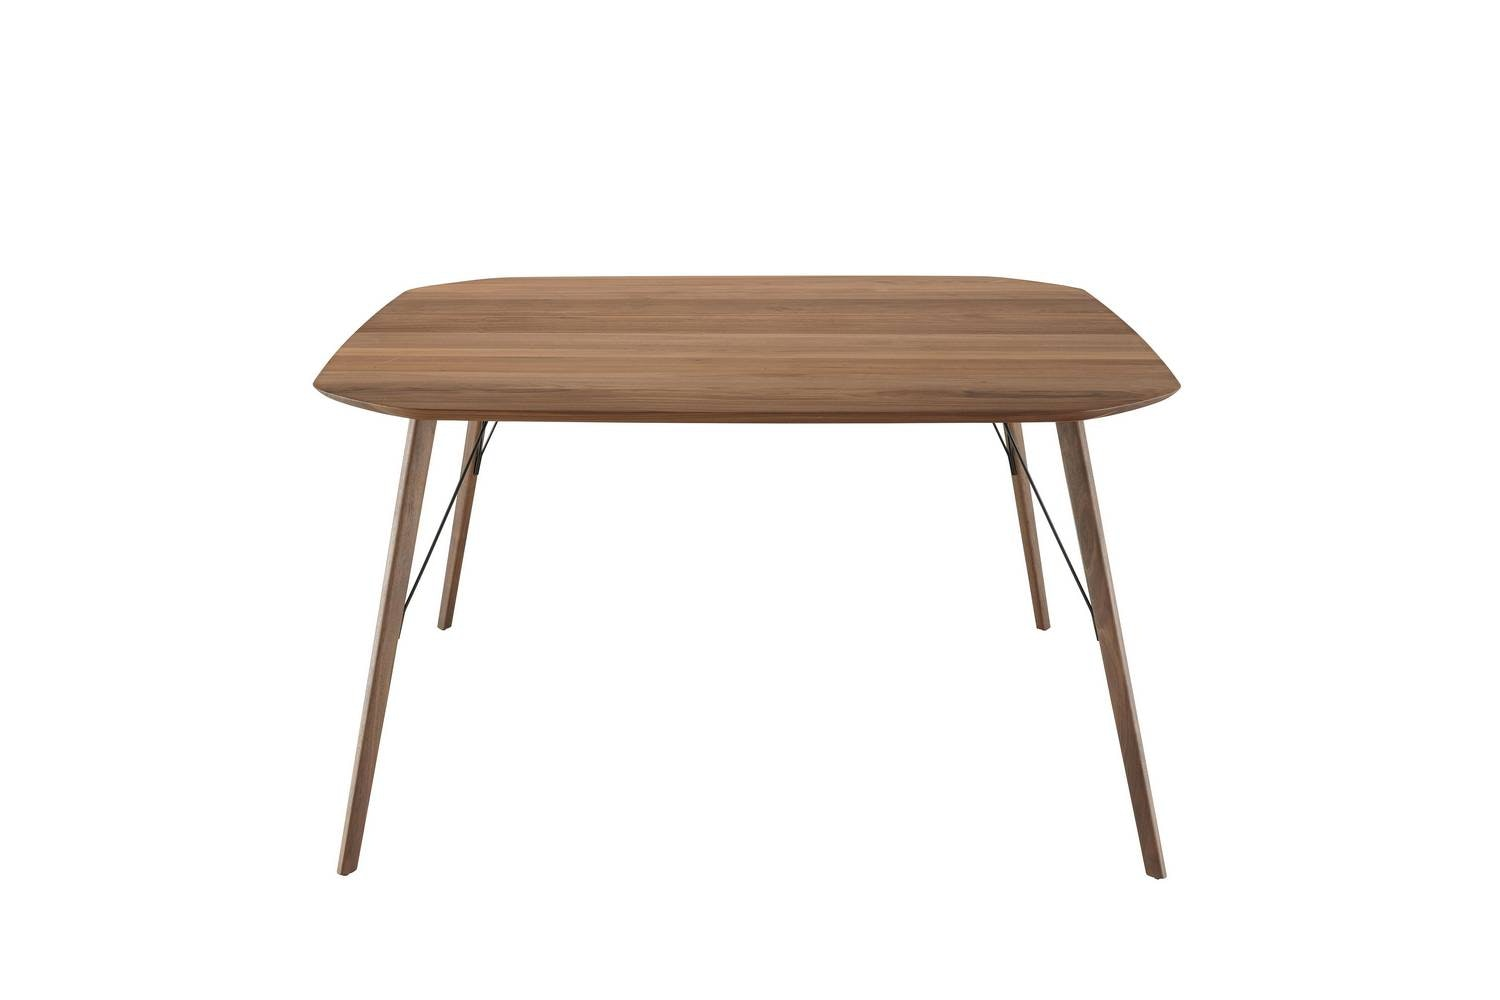 Santiago Table by Frank Rettenbacher for Zanotta